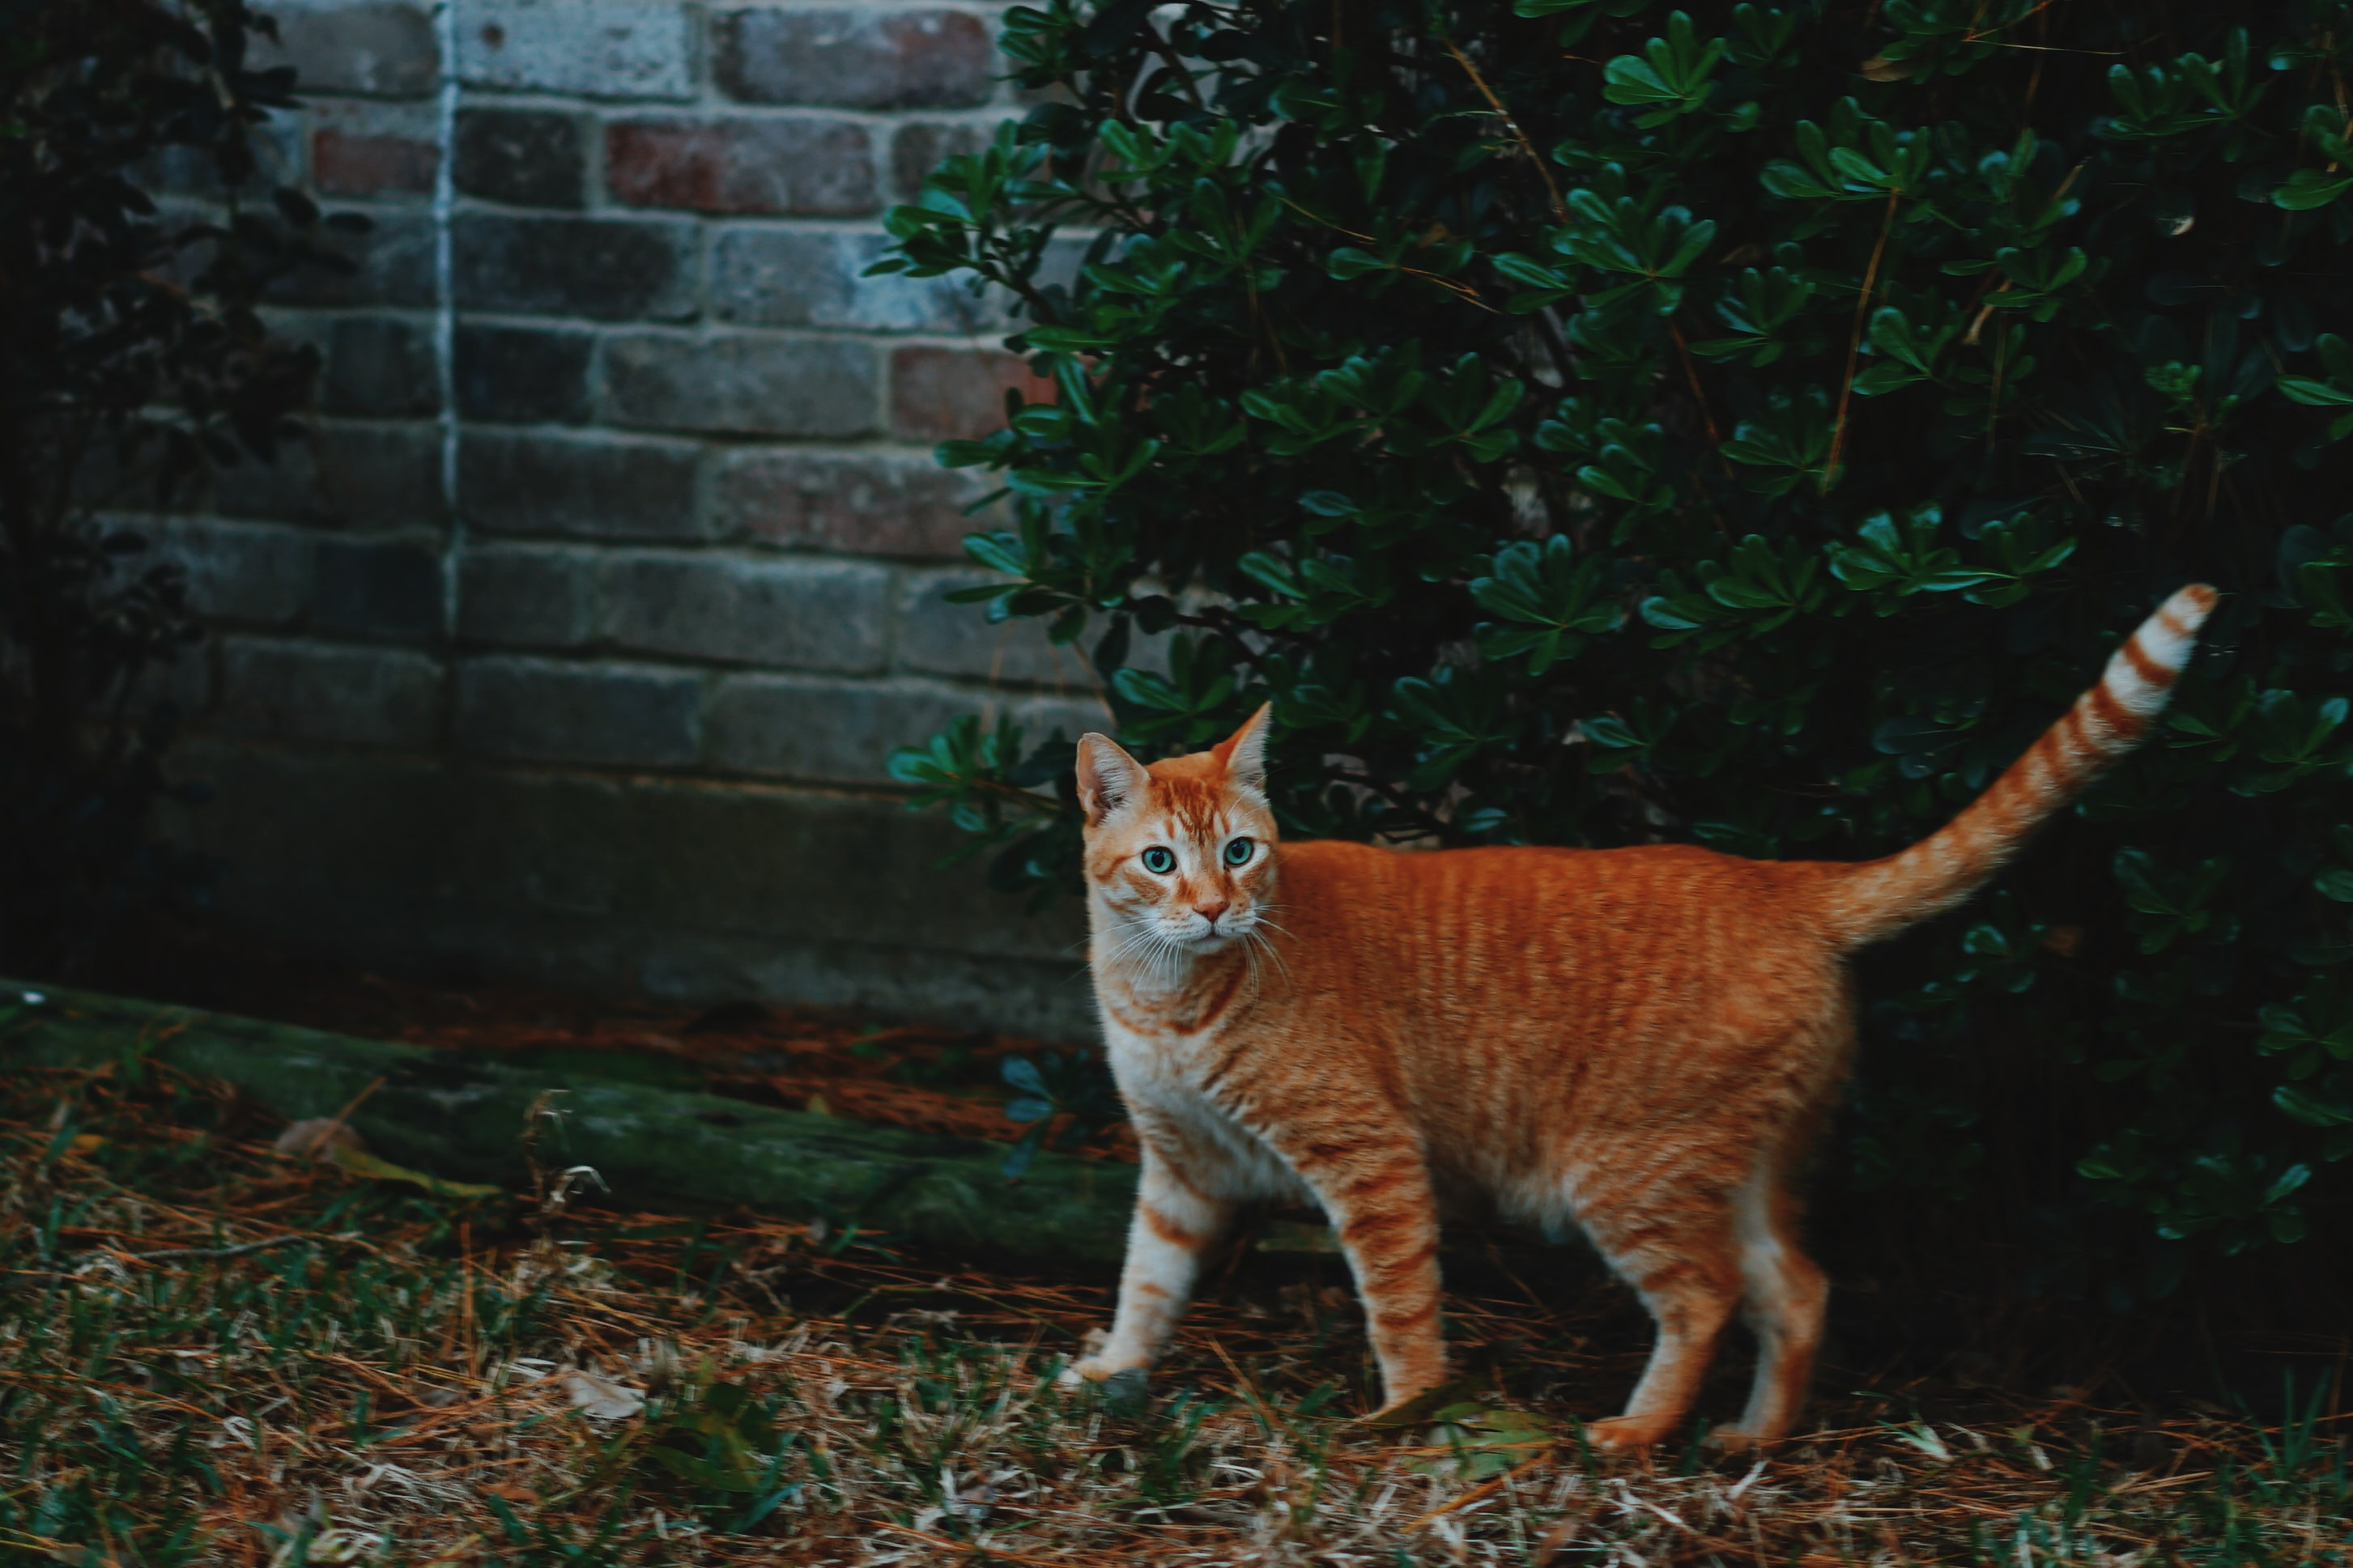 photo of orange tabby cat near plant